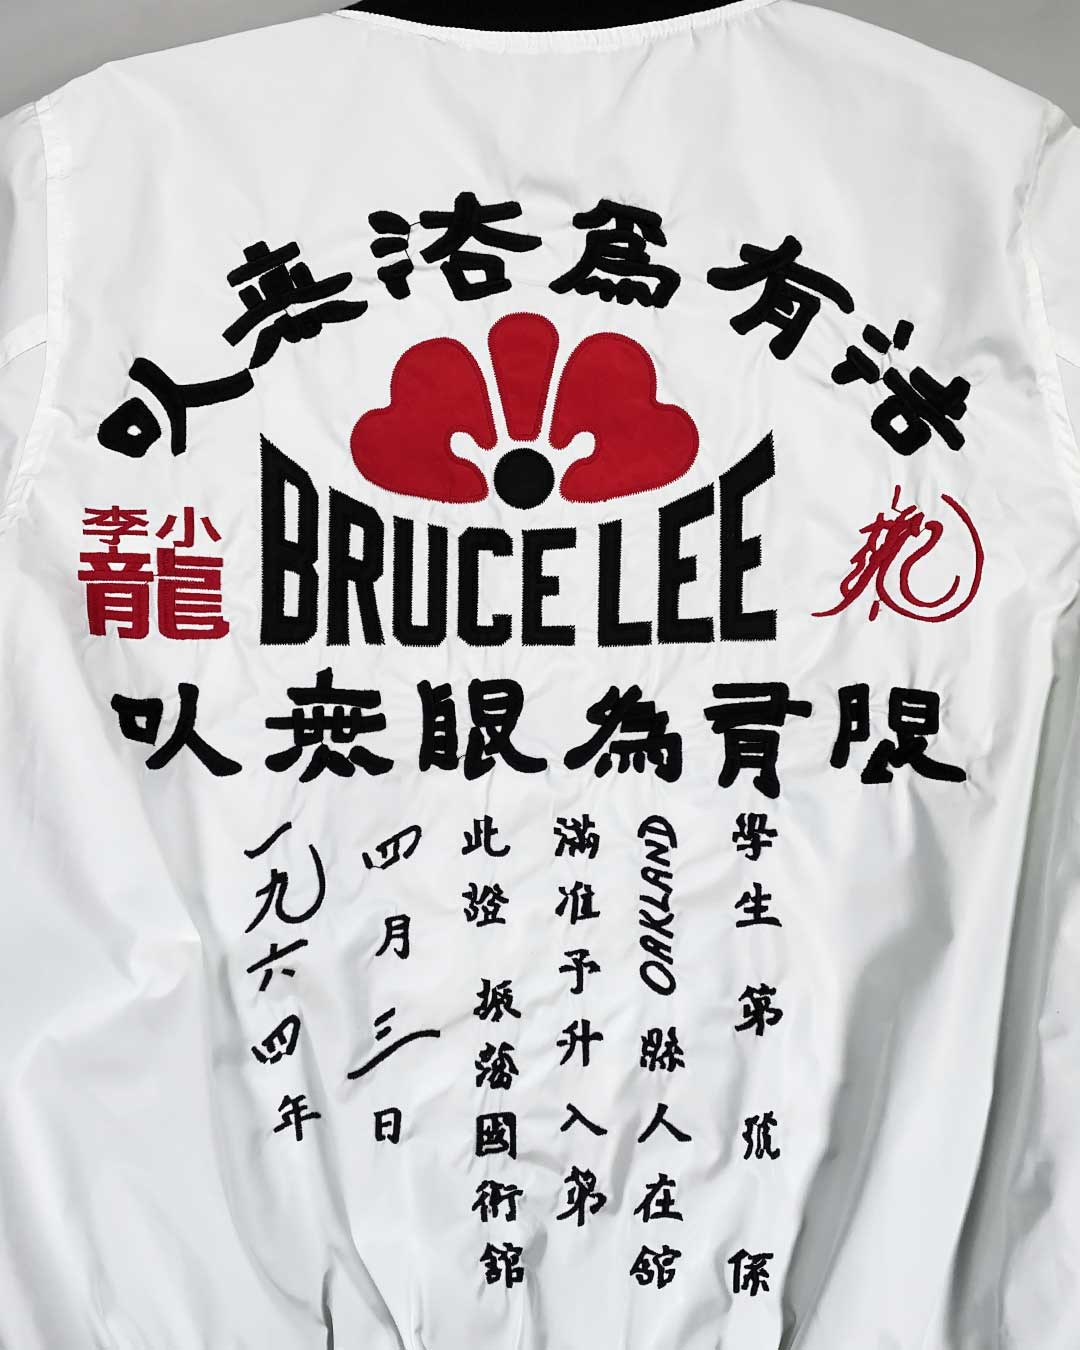 Bruce Lee Script Stadium Jacket - Copasetic Clothing Ltd. dba Roots of Fight